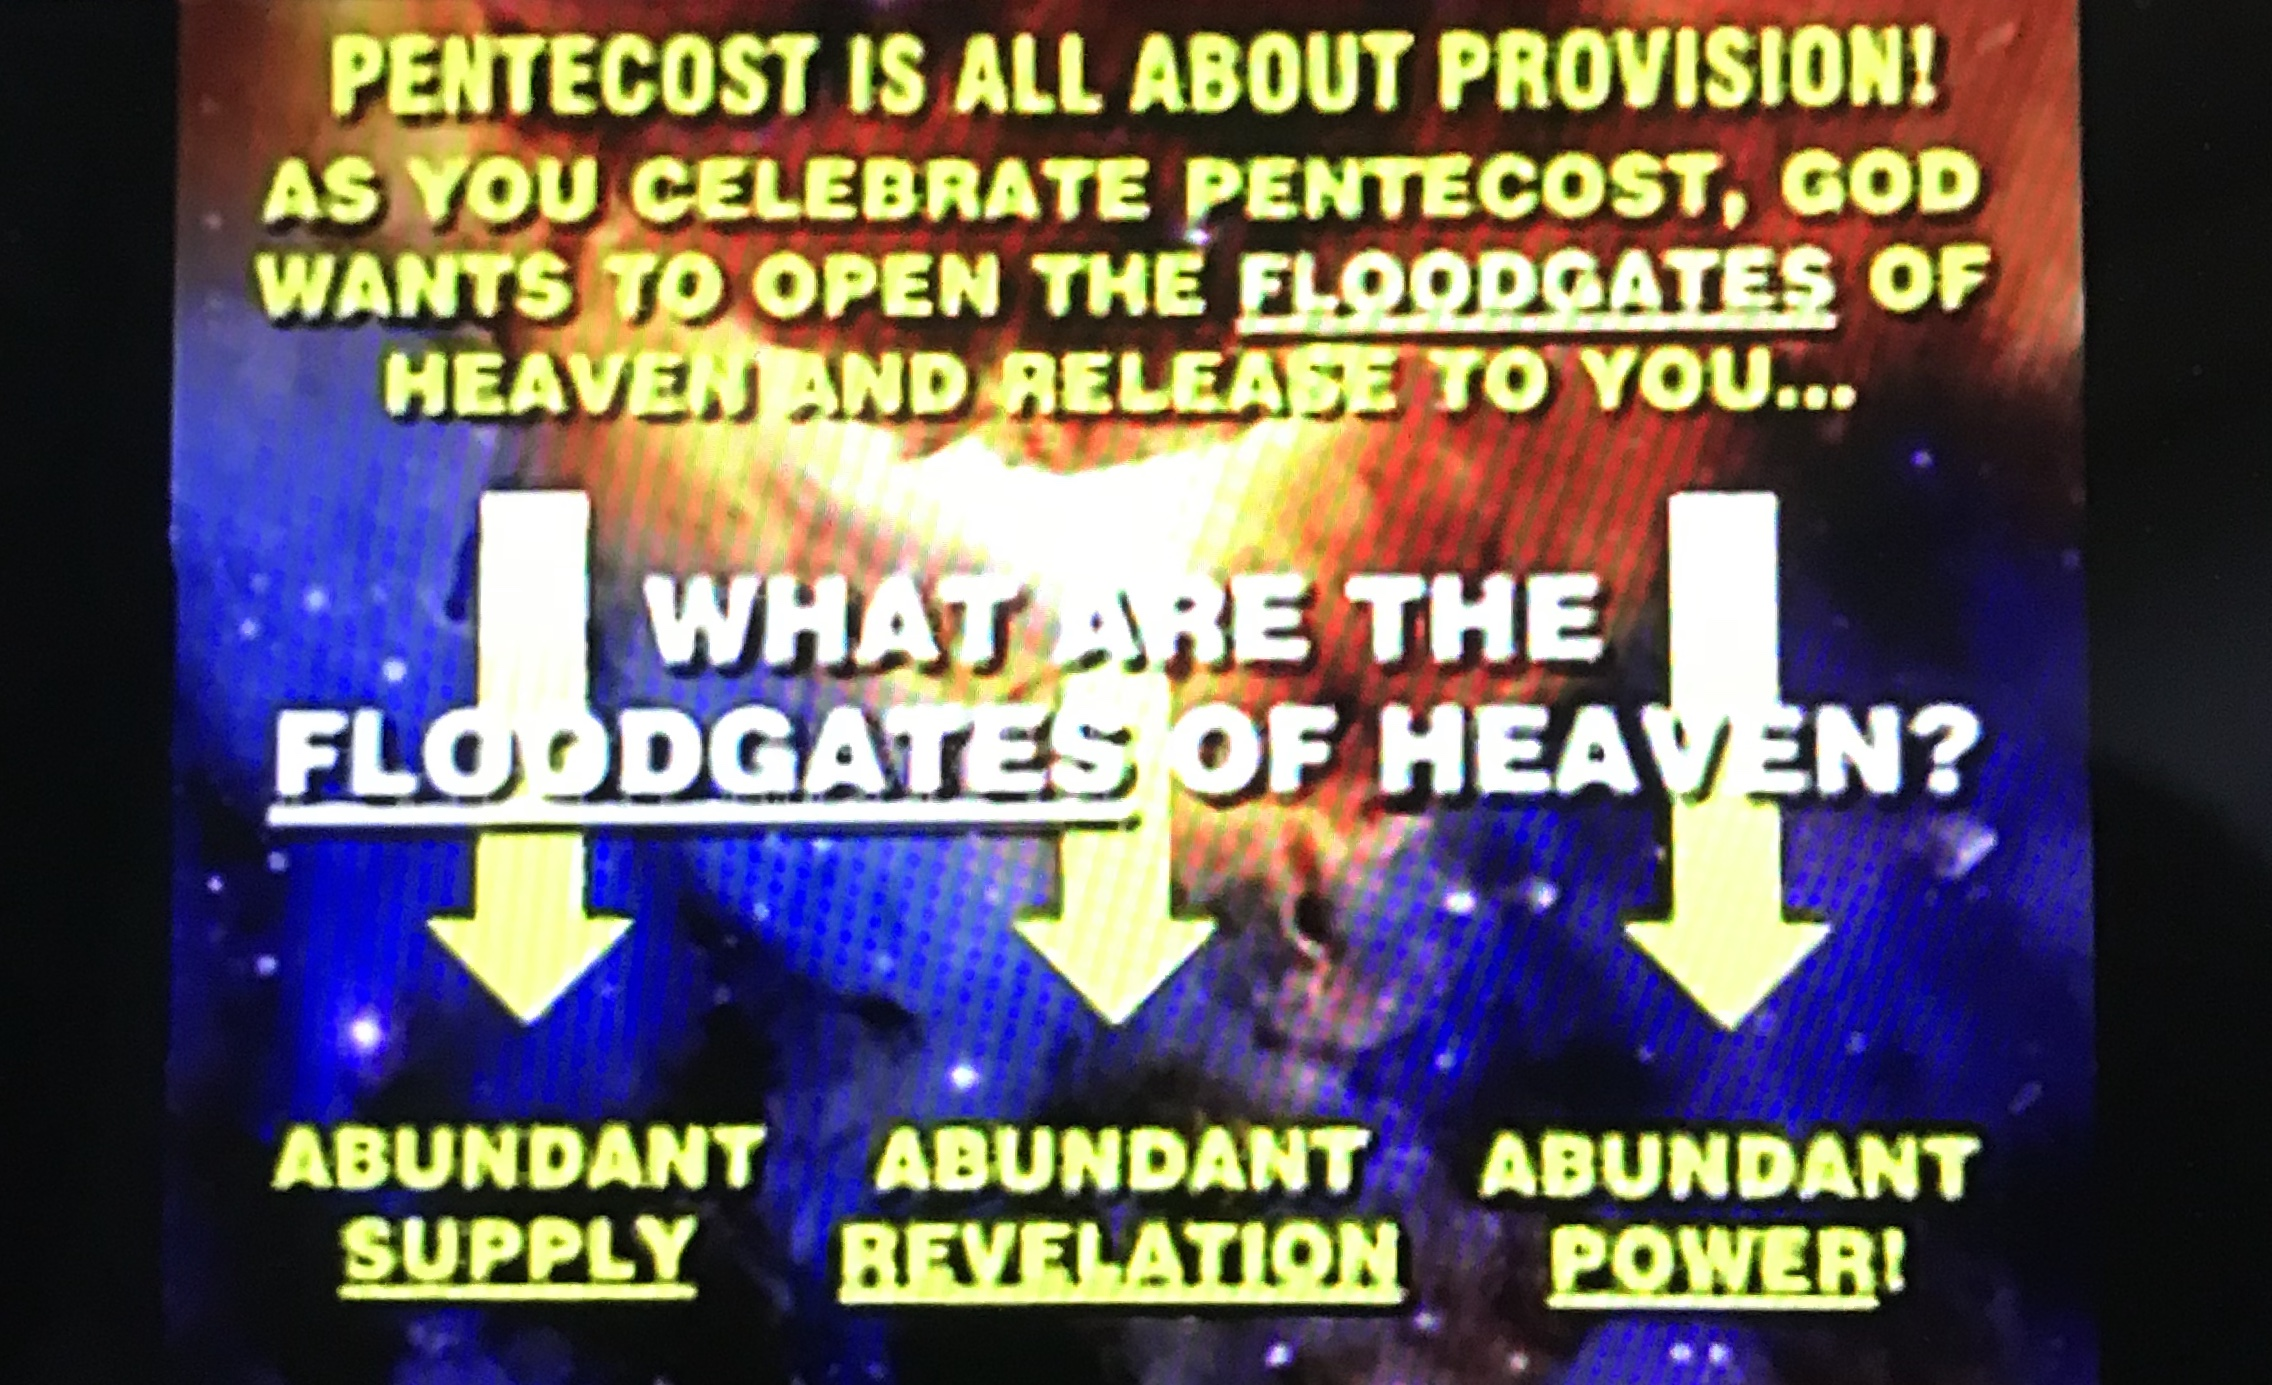 Powerpoint picture from Glory of Zion, Robert Heidler, Pentecost 2019